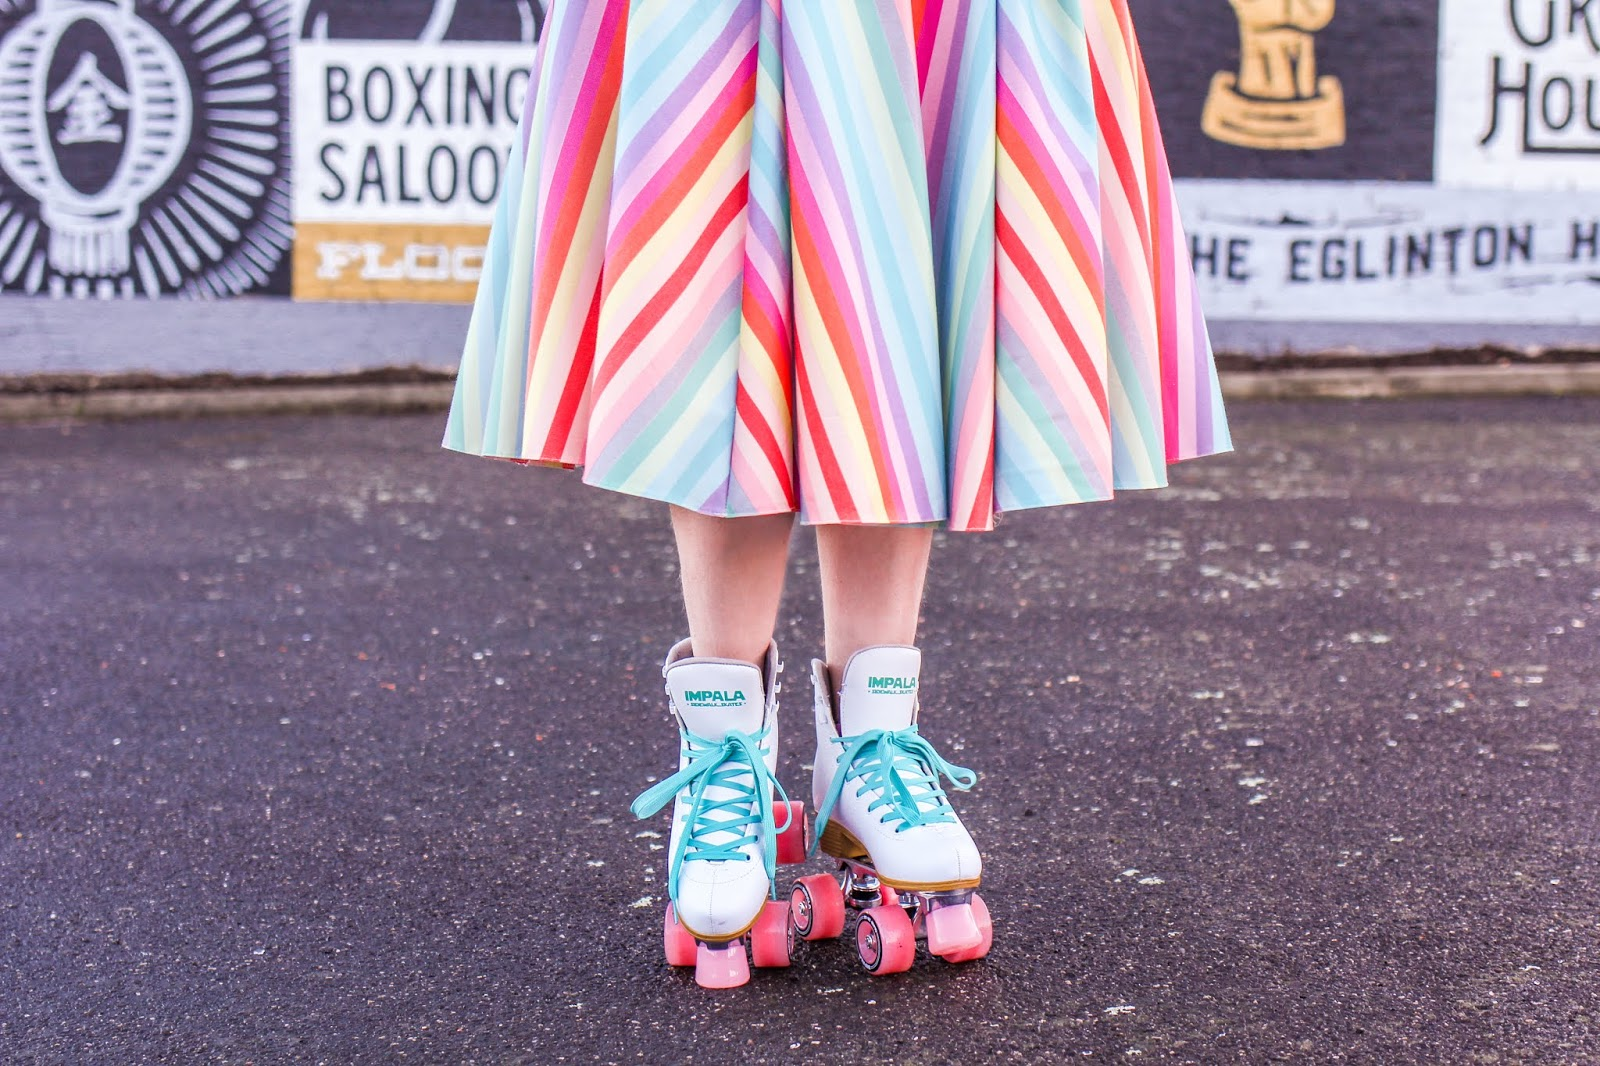 Liana of @findingfemme wears Impala rollerskates and The Pretty Dress Co candy striped dress